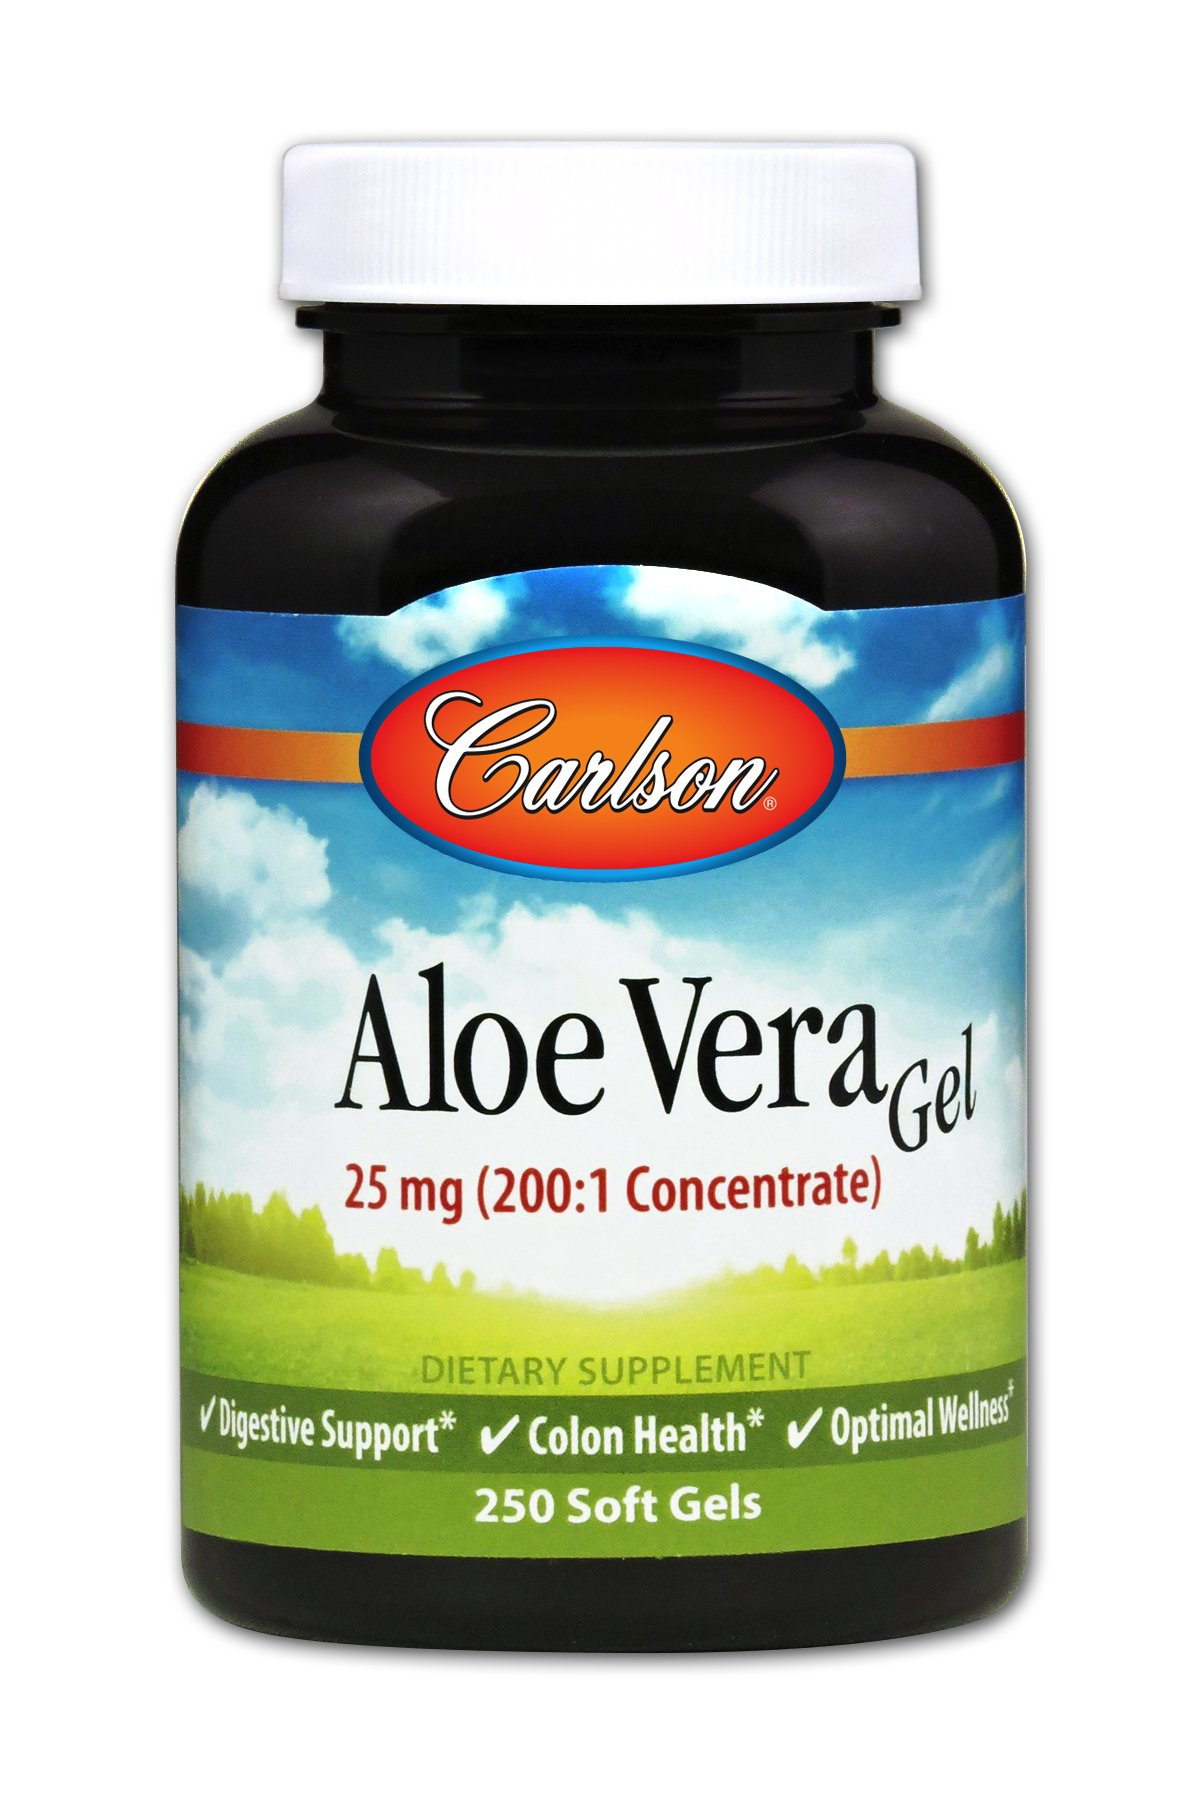 Carlson Aloe Vera Gel 25 mg, 200 to 1 Equivalent to 5,000 mg, 250 Soft Gels